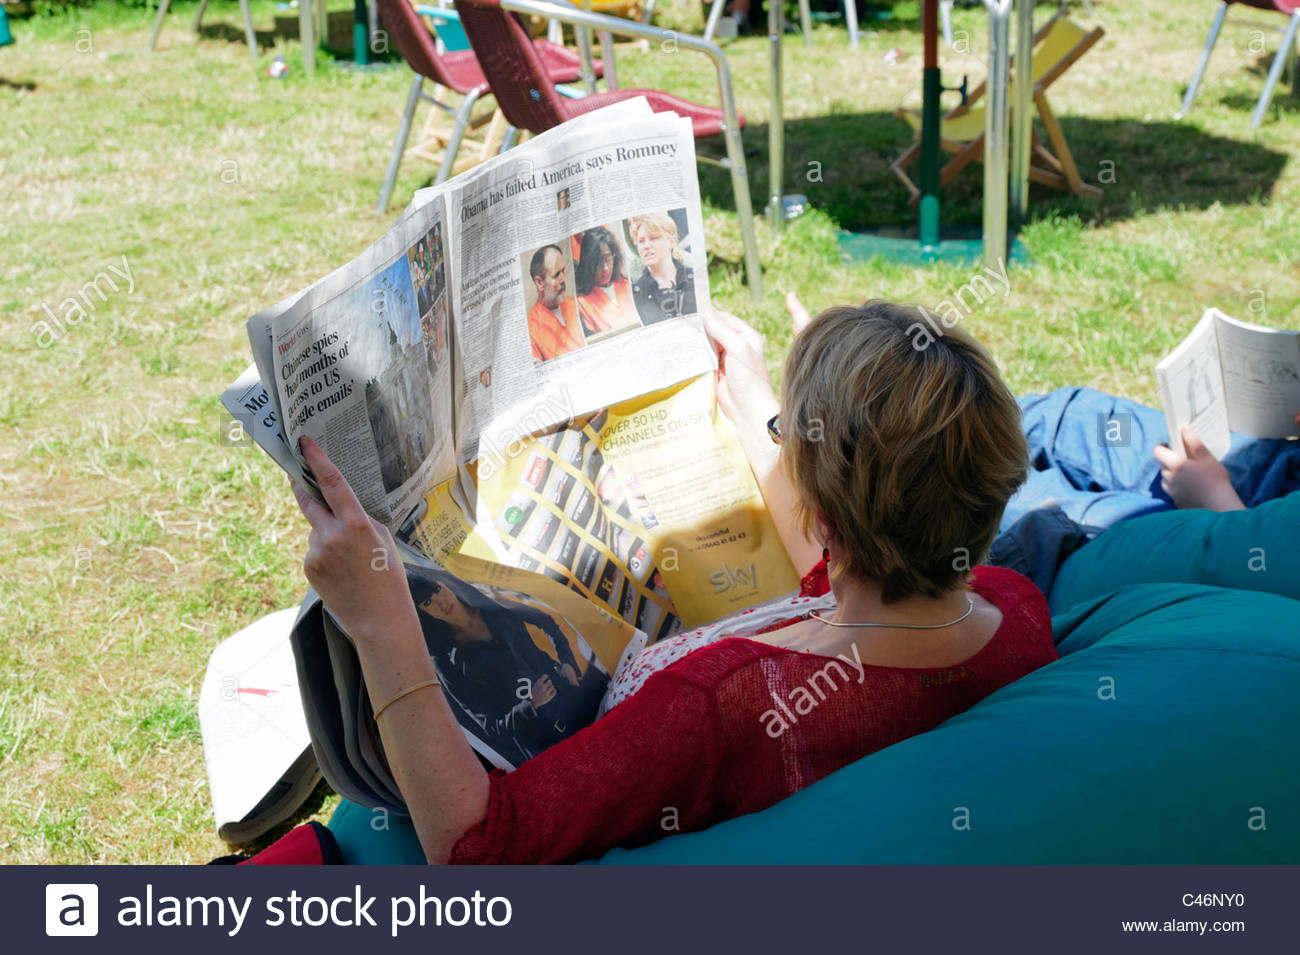 Hay on Wye, Wales, UK. Hay festival woman sitting on bean bag reading a newspaper. - Stock Image